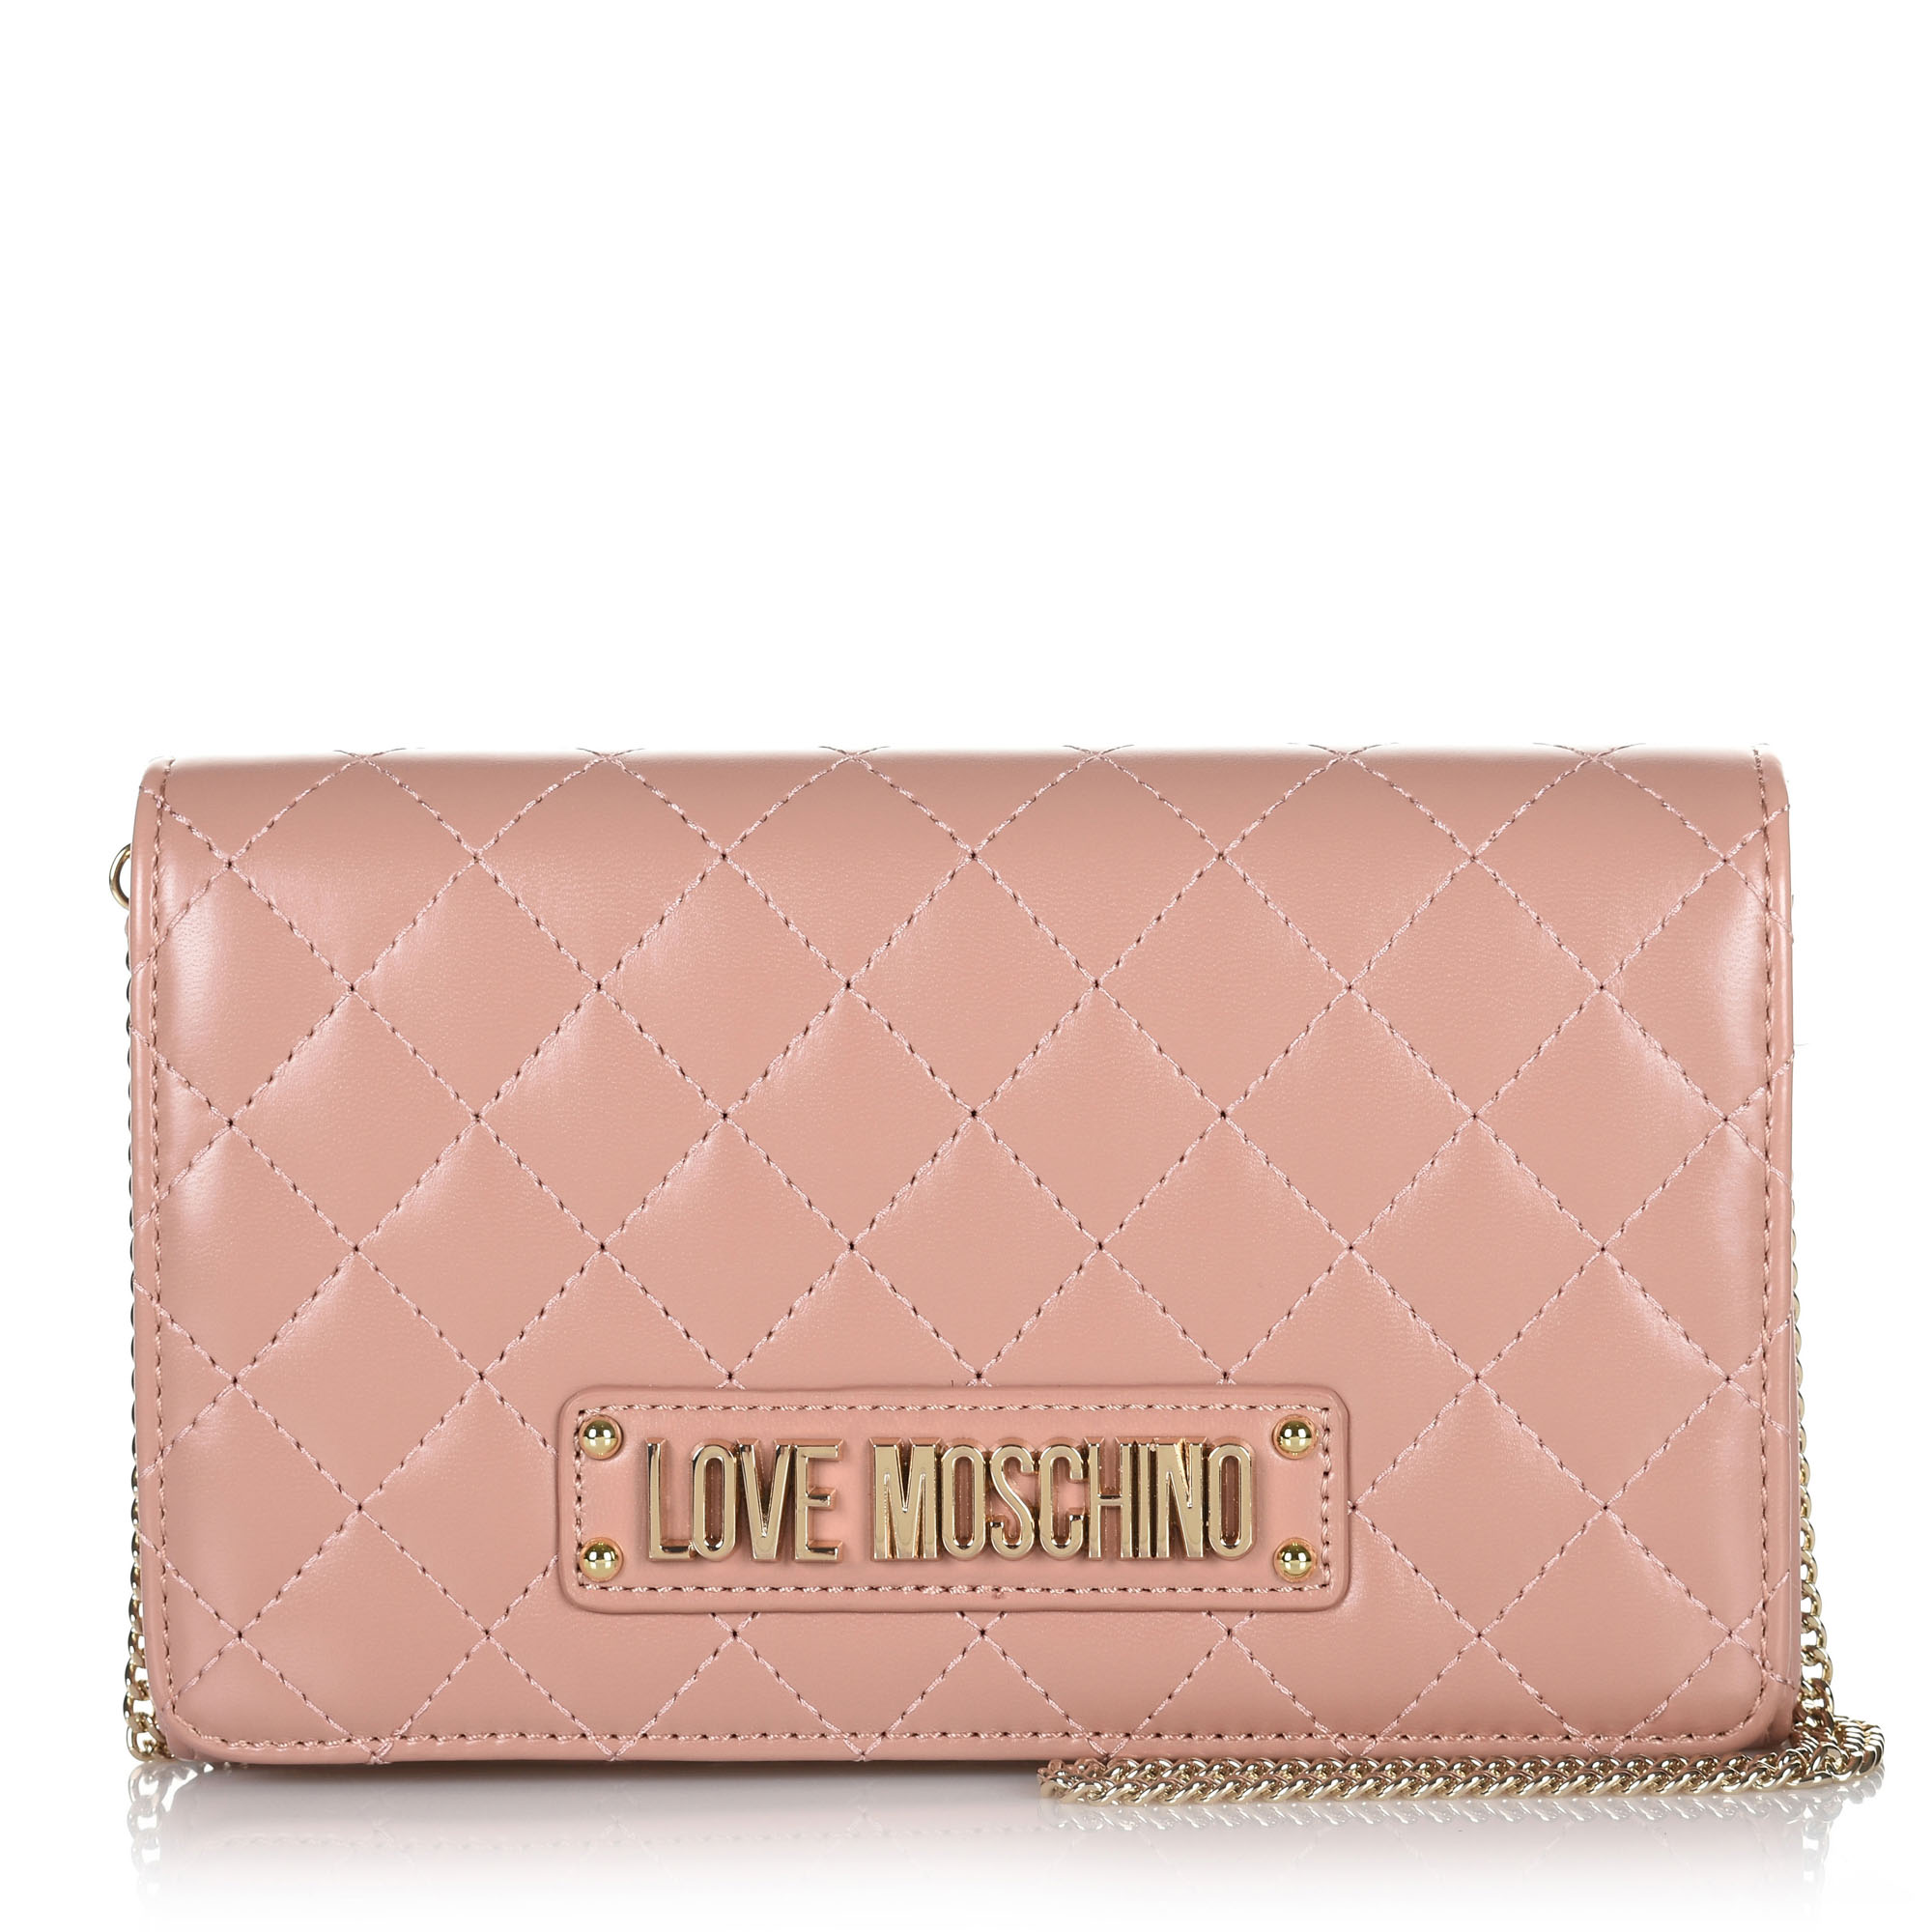 c277fd0ee3 Τσαντάκι Ώμου-Χιαστί Love Moschino Quilted Nappa JC4118PP17L ...